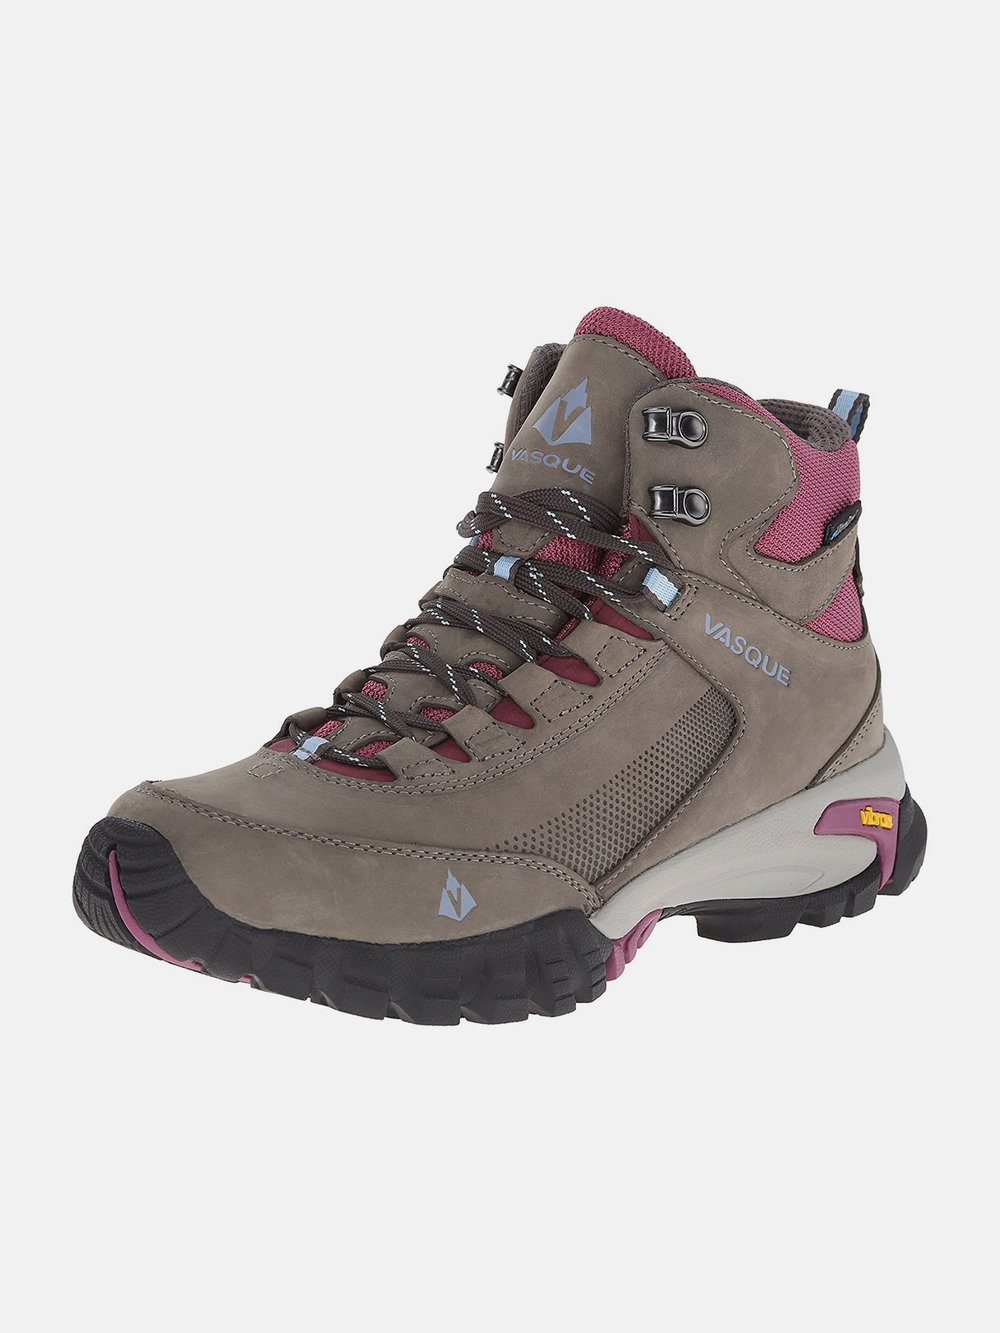 Vasque Hiking Boots - $99